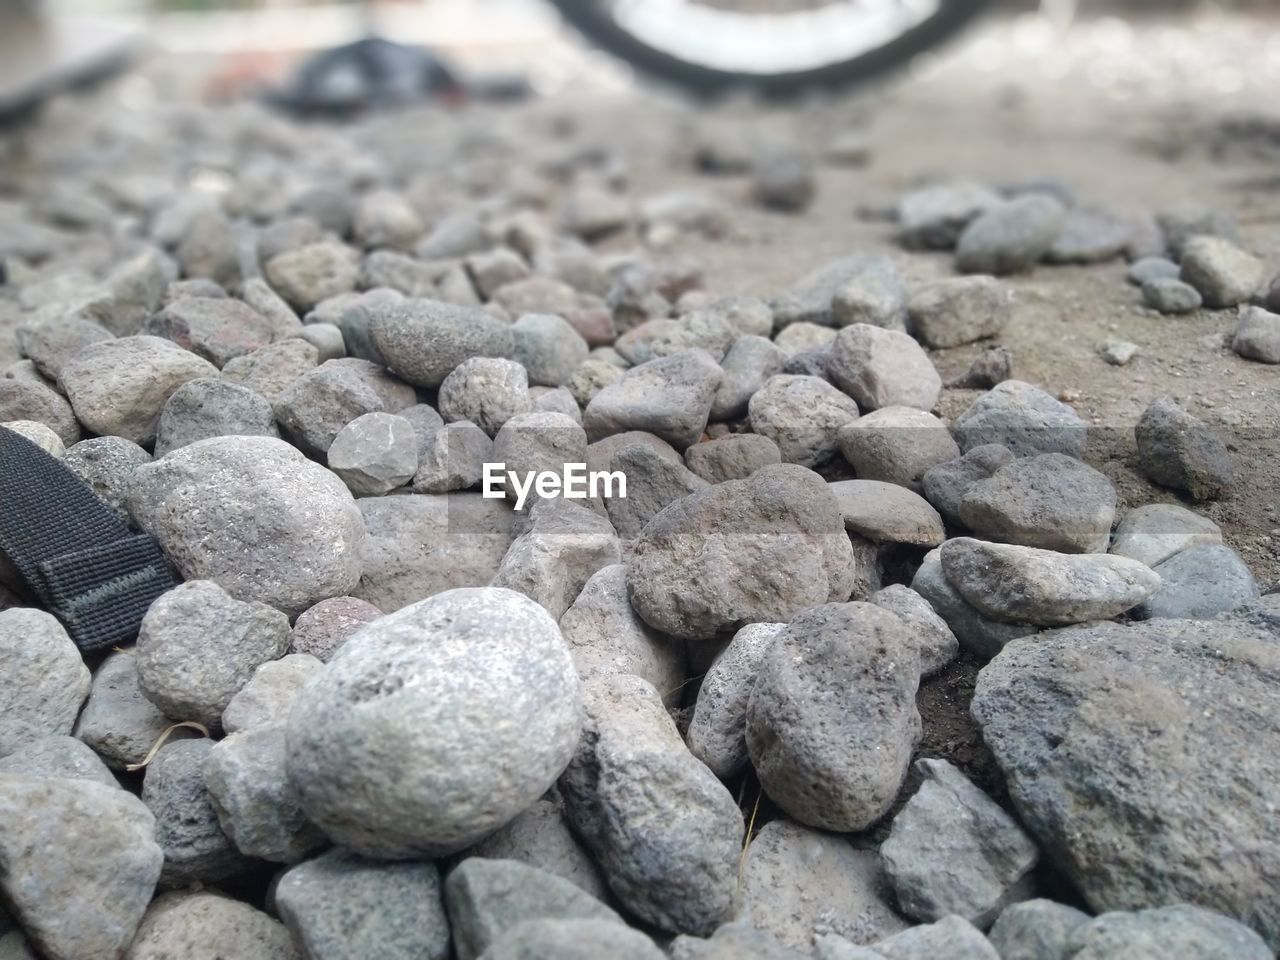 solid, rock, stone - object, rock - object, stone, no people, still life, textured, day, large group of objects, high angle view, pebble, close-up, full frame, focus on foreground, nature, abundance, backgrounds, outdoors, rough